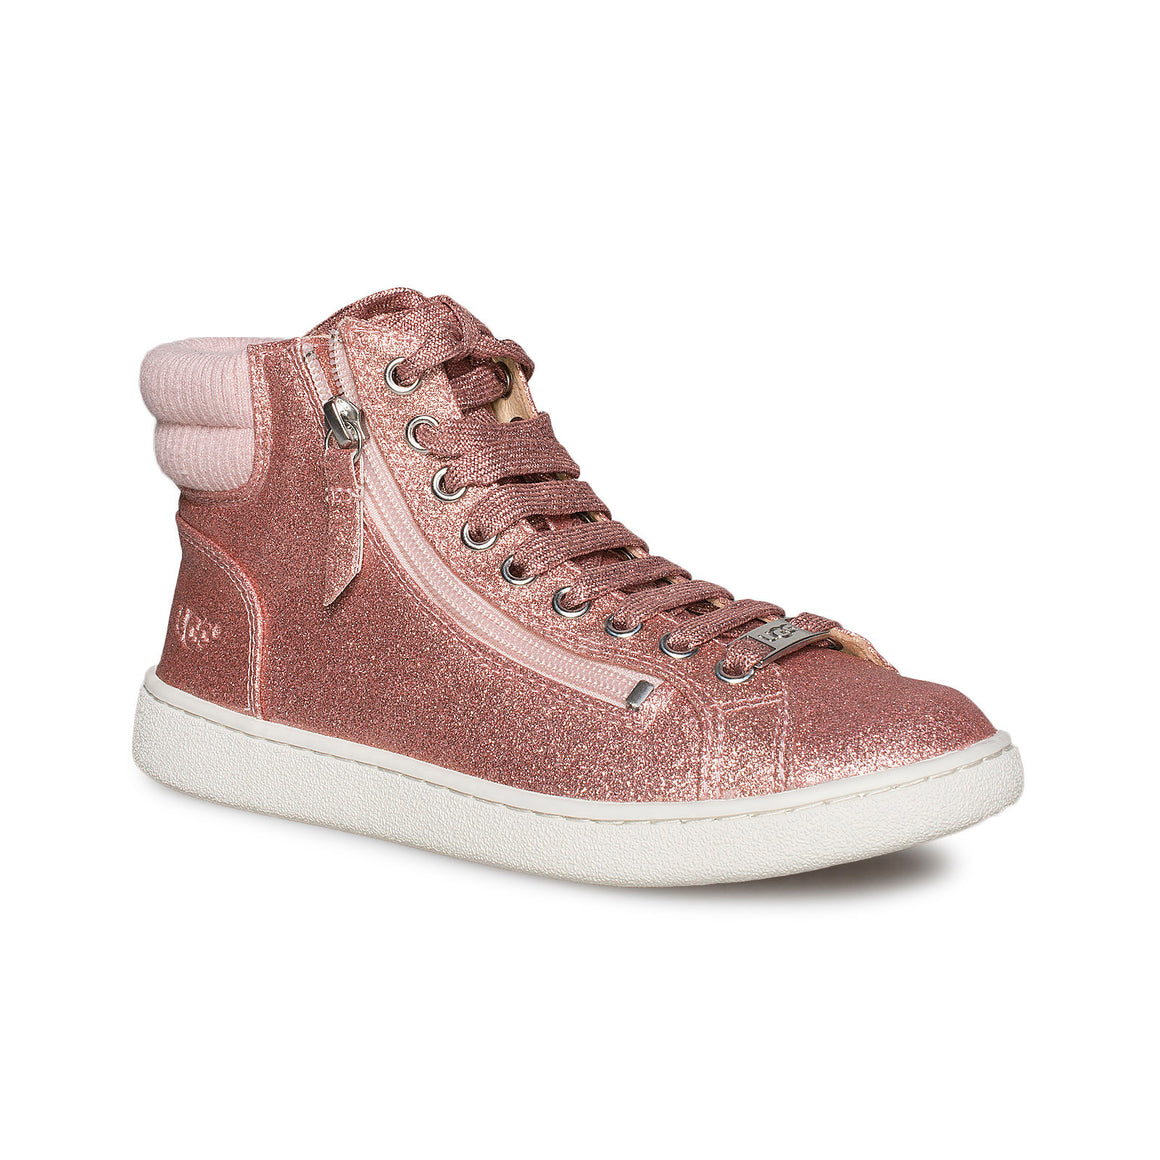 UGG Olive Glitter Pink Sneakers - Women's